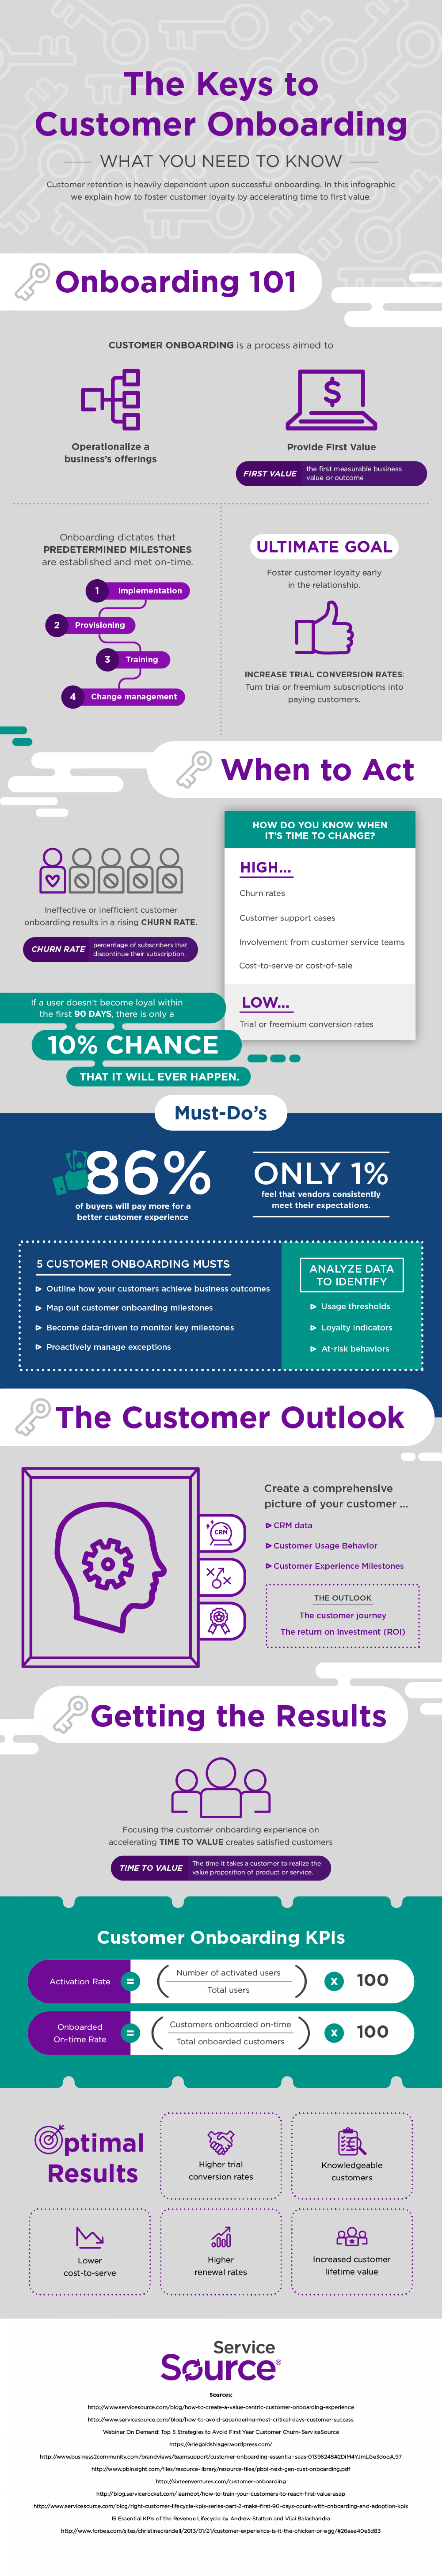 The Keys to Customer Onboarding-- What You Need to Know Infographic